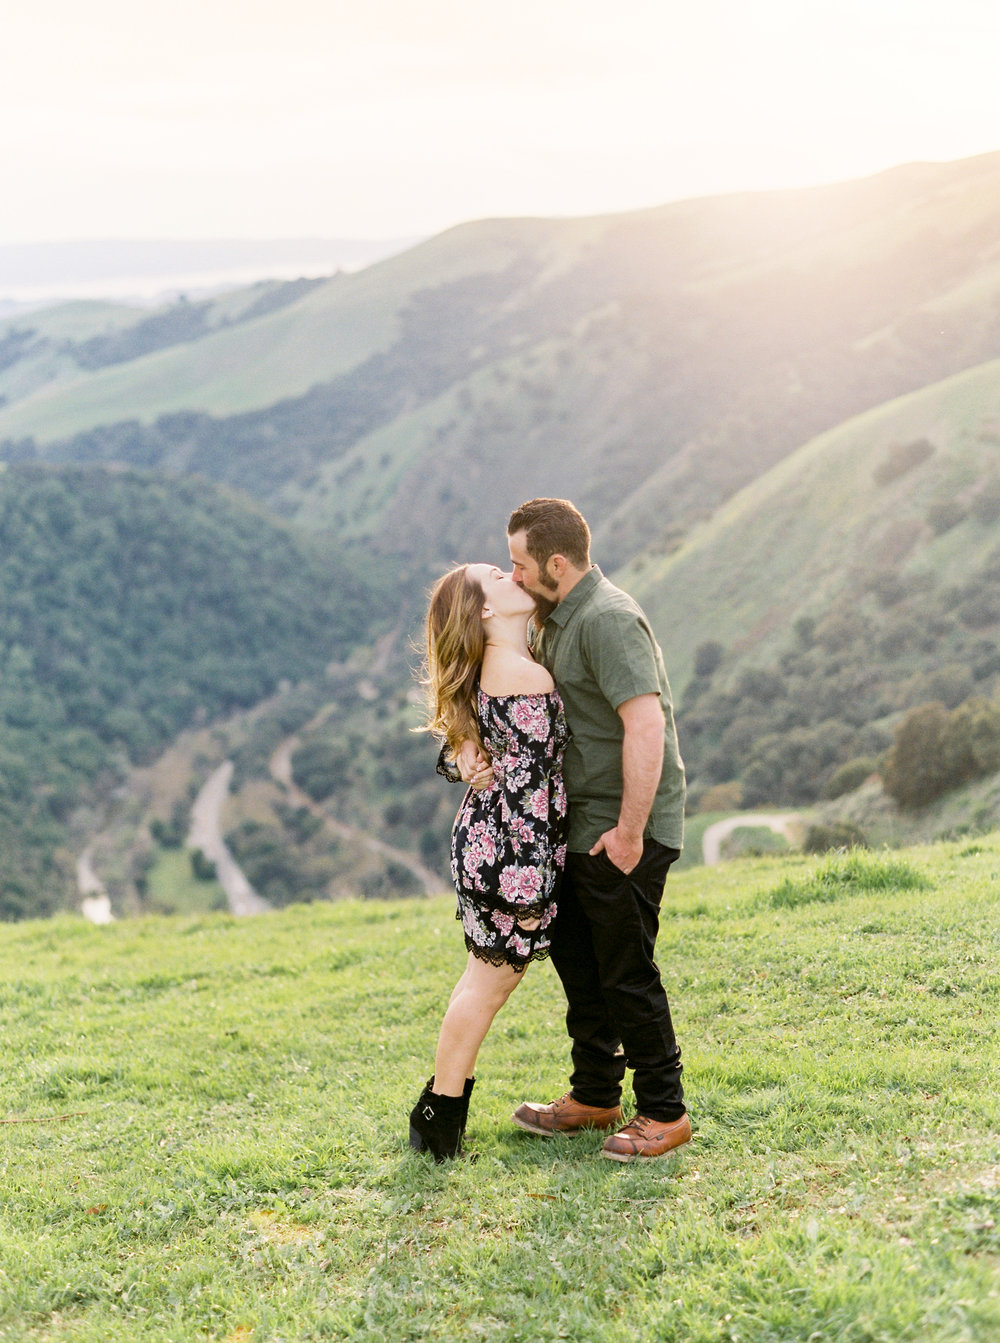 Sunol California Engagement Shoot - Kristine Herman Photography-14.jpg